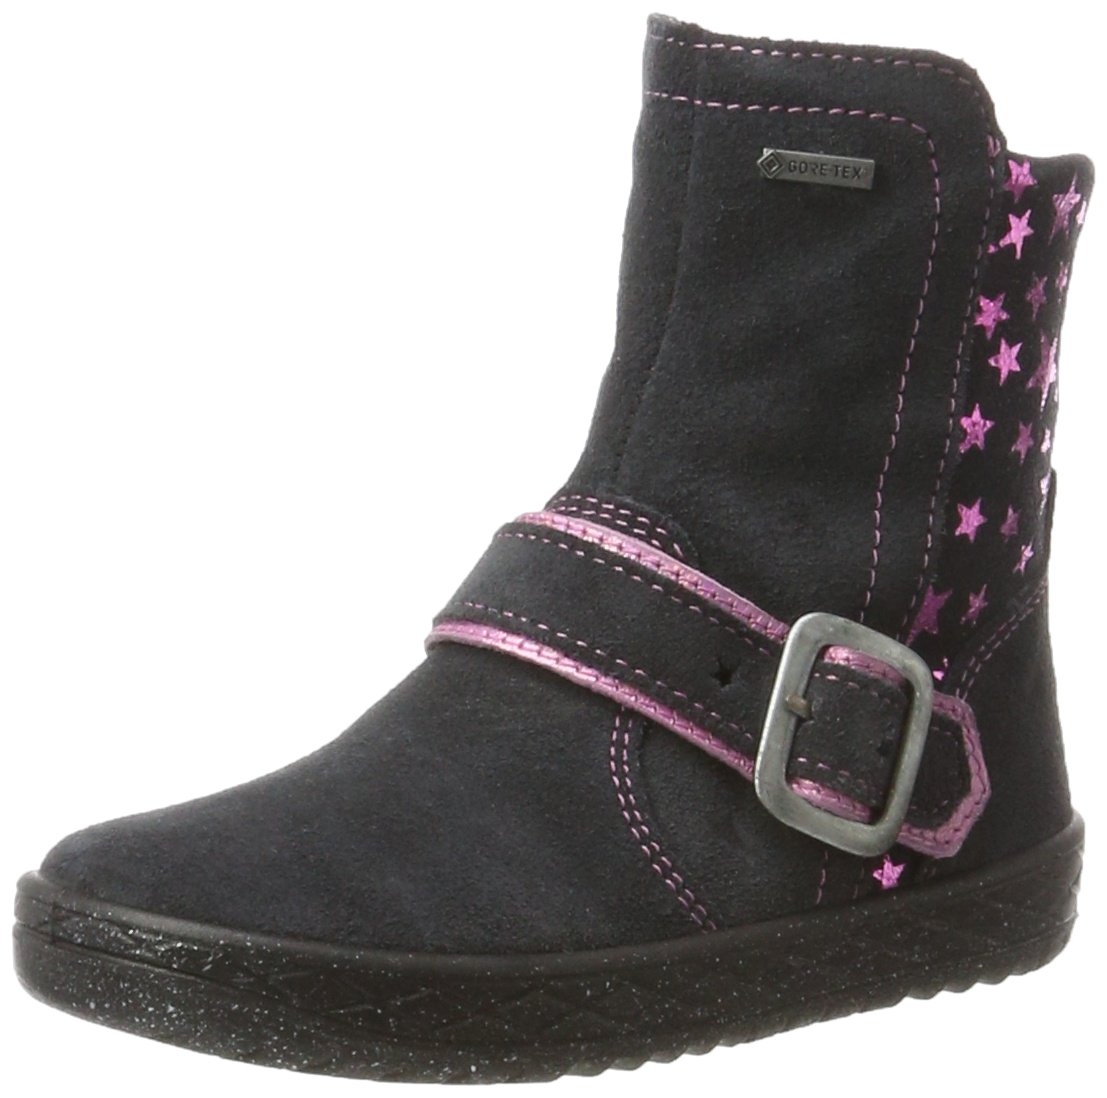 Superfit Mercury, Bottes Bottes de Neige Fille, Neige Bleu Grau (Charcoal Mercury, Kombi) e1bed77 - automaticcouplings.space